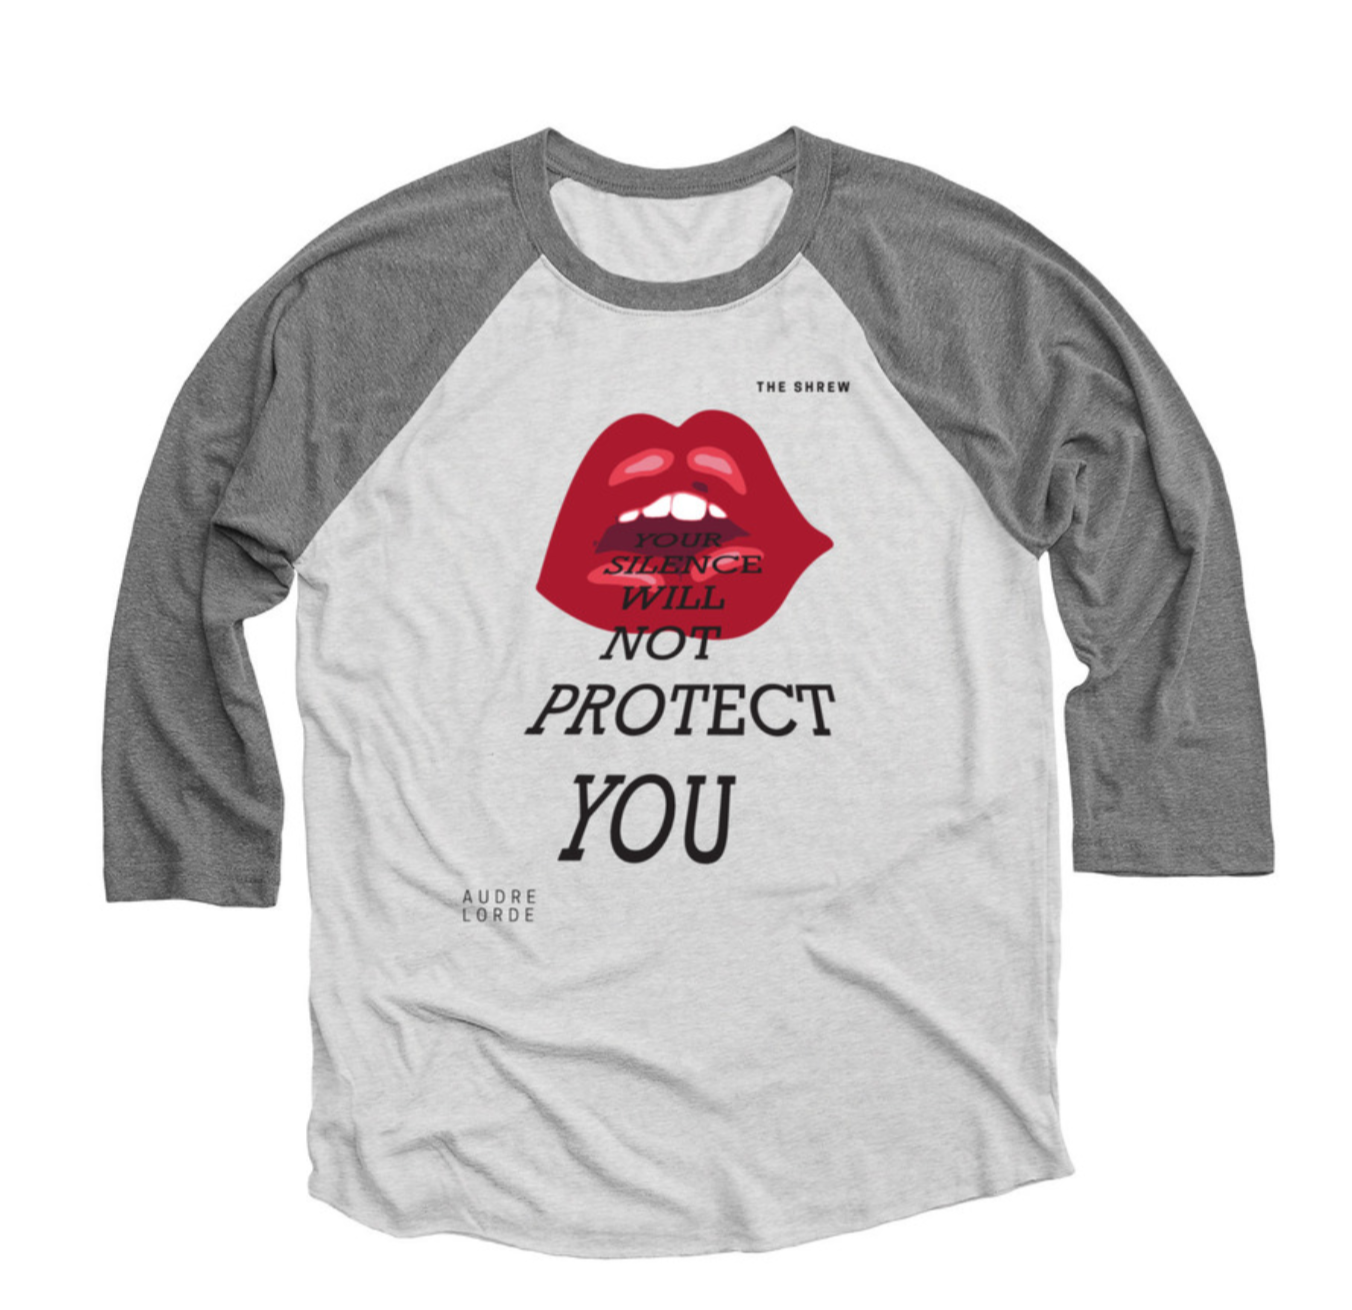 Premium Heather and Heather White #SpeakOut Campaign 3/4 Baseball Tee